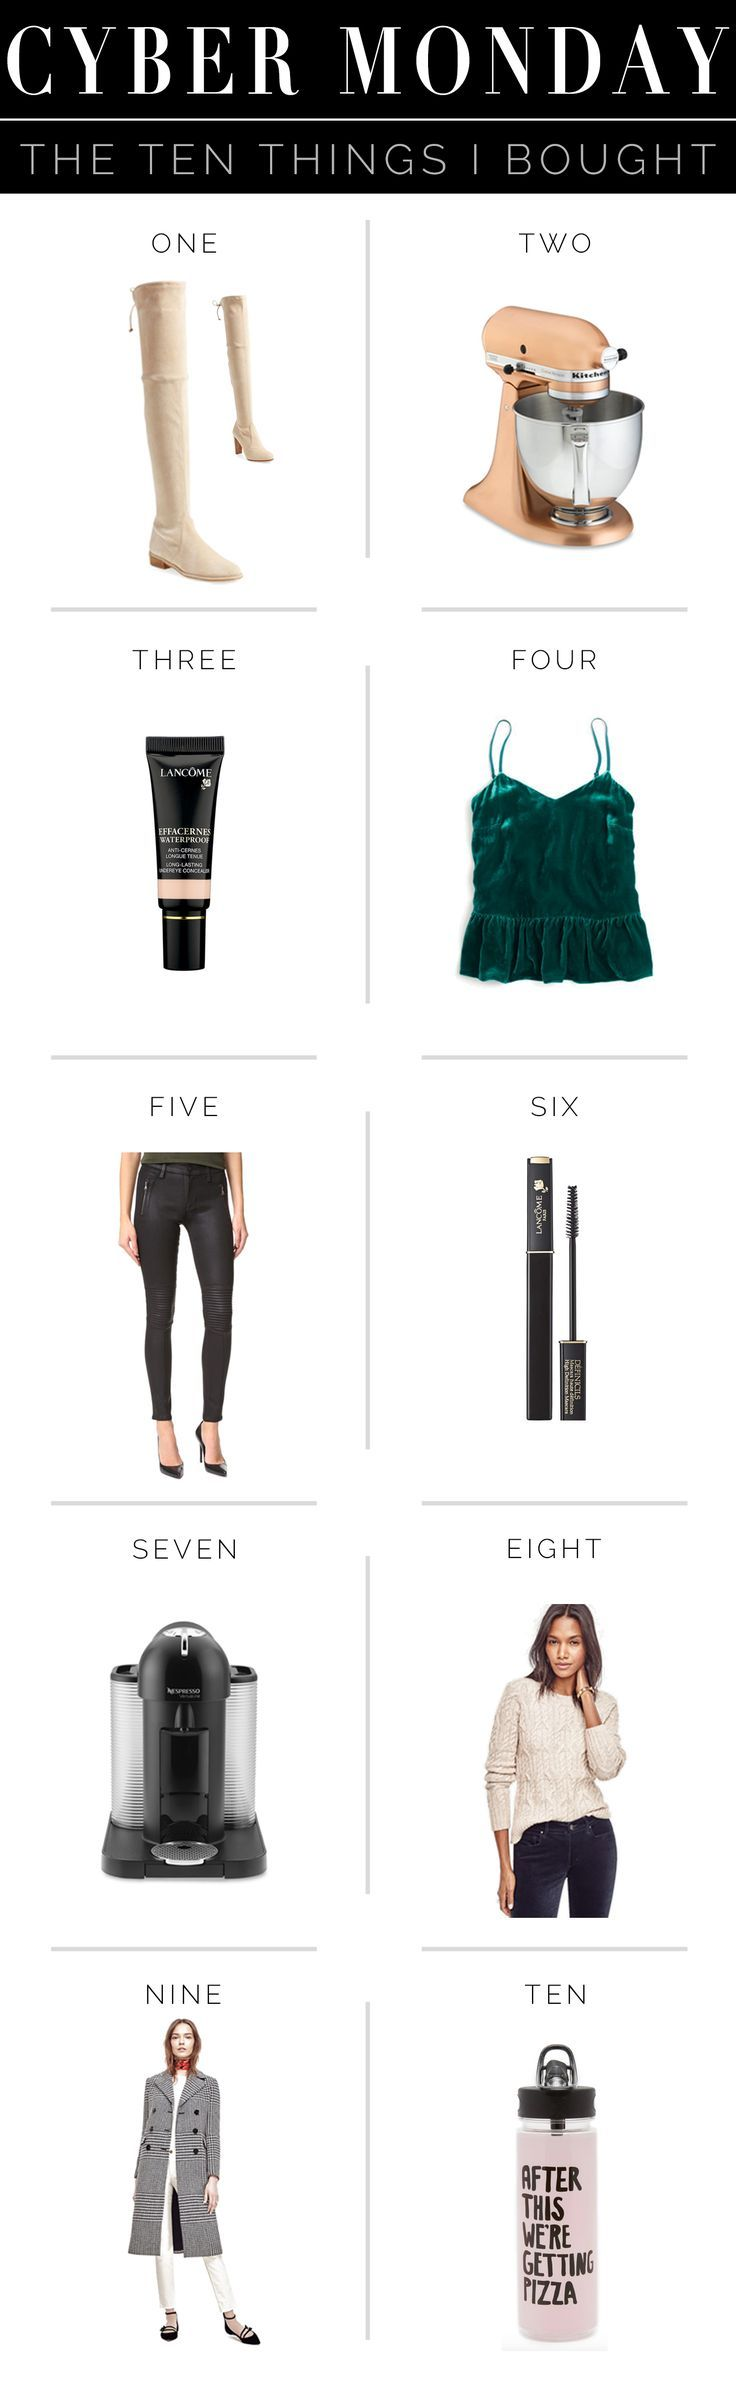 """The 10 #CyberMonday Sale items I bought today!  Stuart Weitzman Lowland (and Highland) Boots at 40% off, Copper Kitchenaid Stand Mixer on sale, Lancome concealer at 20% off, emerald green velvet cami at 40% off, coated leather moto skinny jeans at 25% off, lancome definicils mascara at 20% off, Nespresso machines at 30% off, oatmeal cableknit sweater at 50% off, glen plaid black and white double breasted coat at 50% off, """"after this we're getting pizza"""" water bottle at 25% off!"""